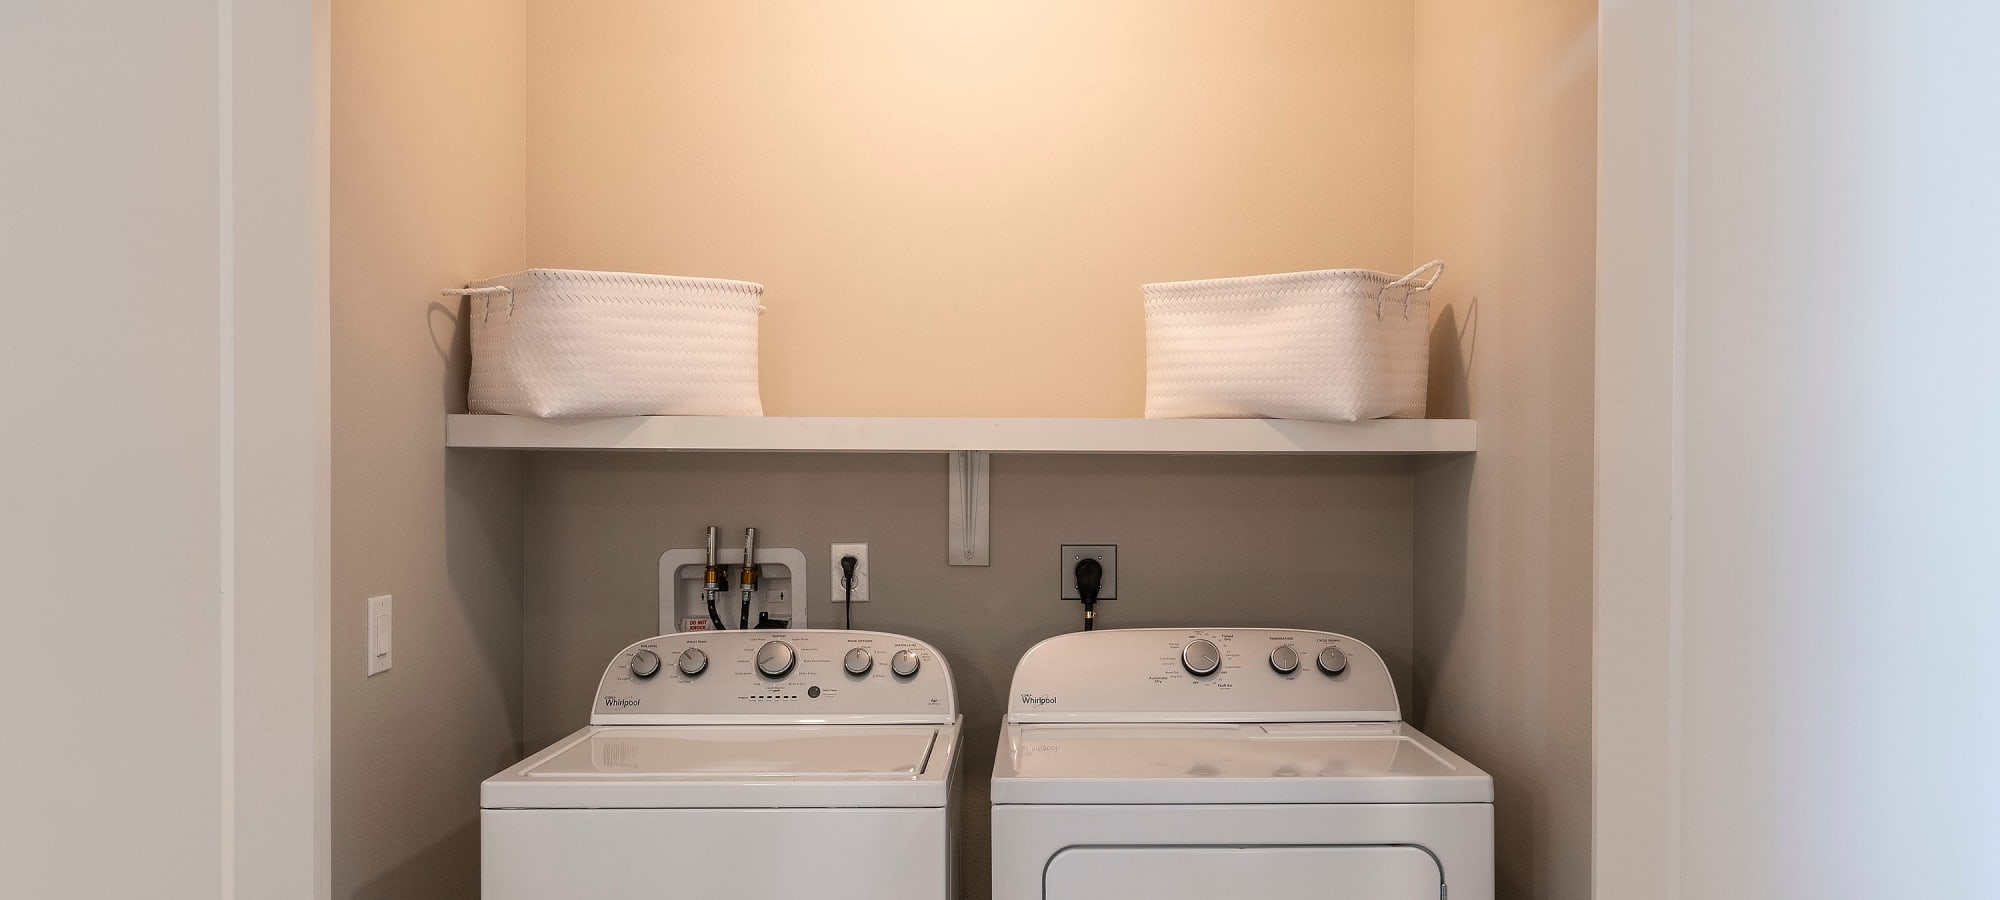 In-unit full-size washer and dryer in a model home at Carter in Scottsdale, Arizona